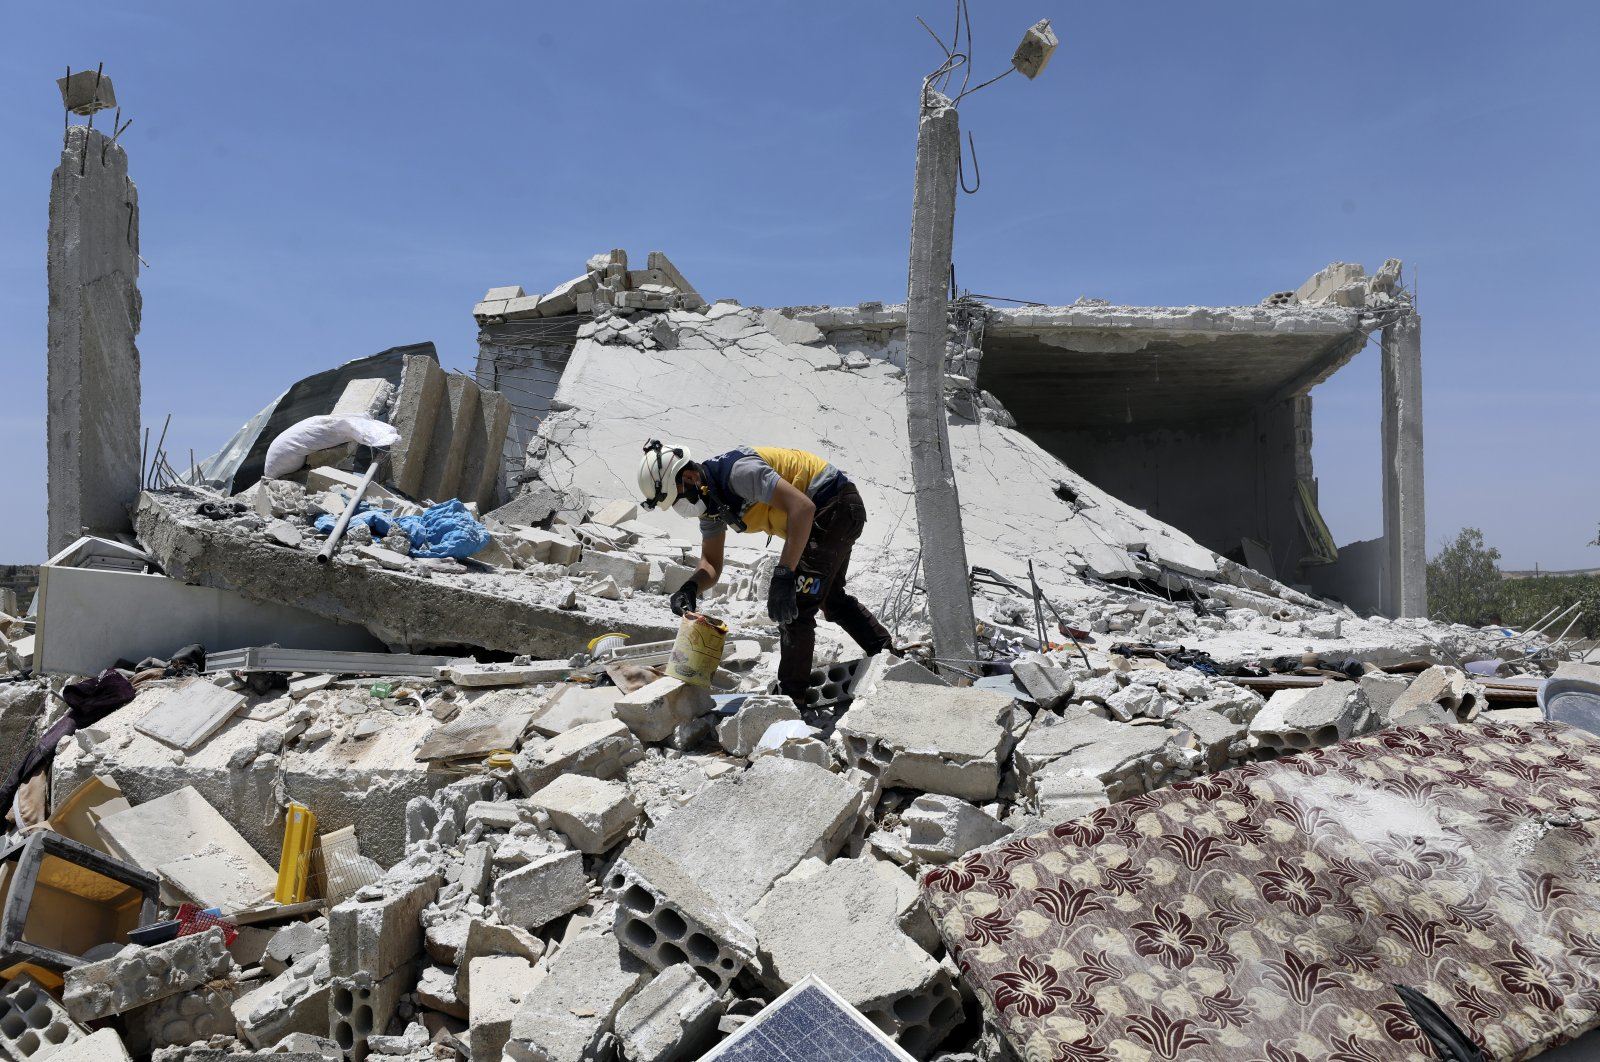 A civil defense worker inspects a damage house after shelling hit the town of Ibleen, a village in southern Idlib province, Syria, Saturday, July 3, 2021. (AP Photo)